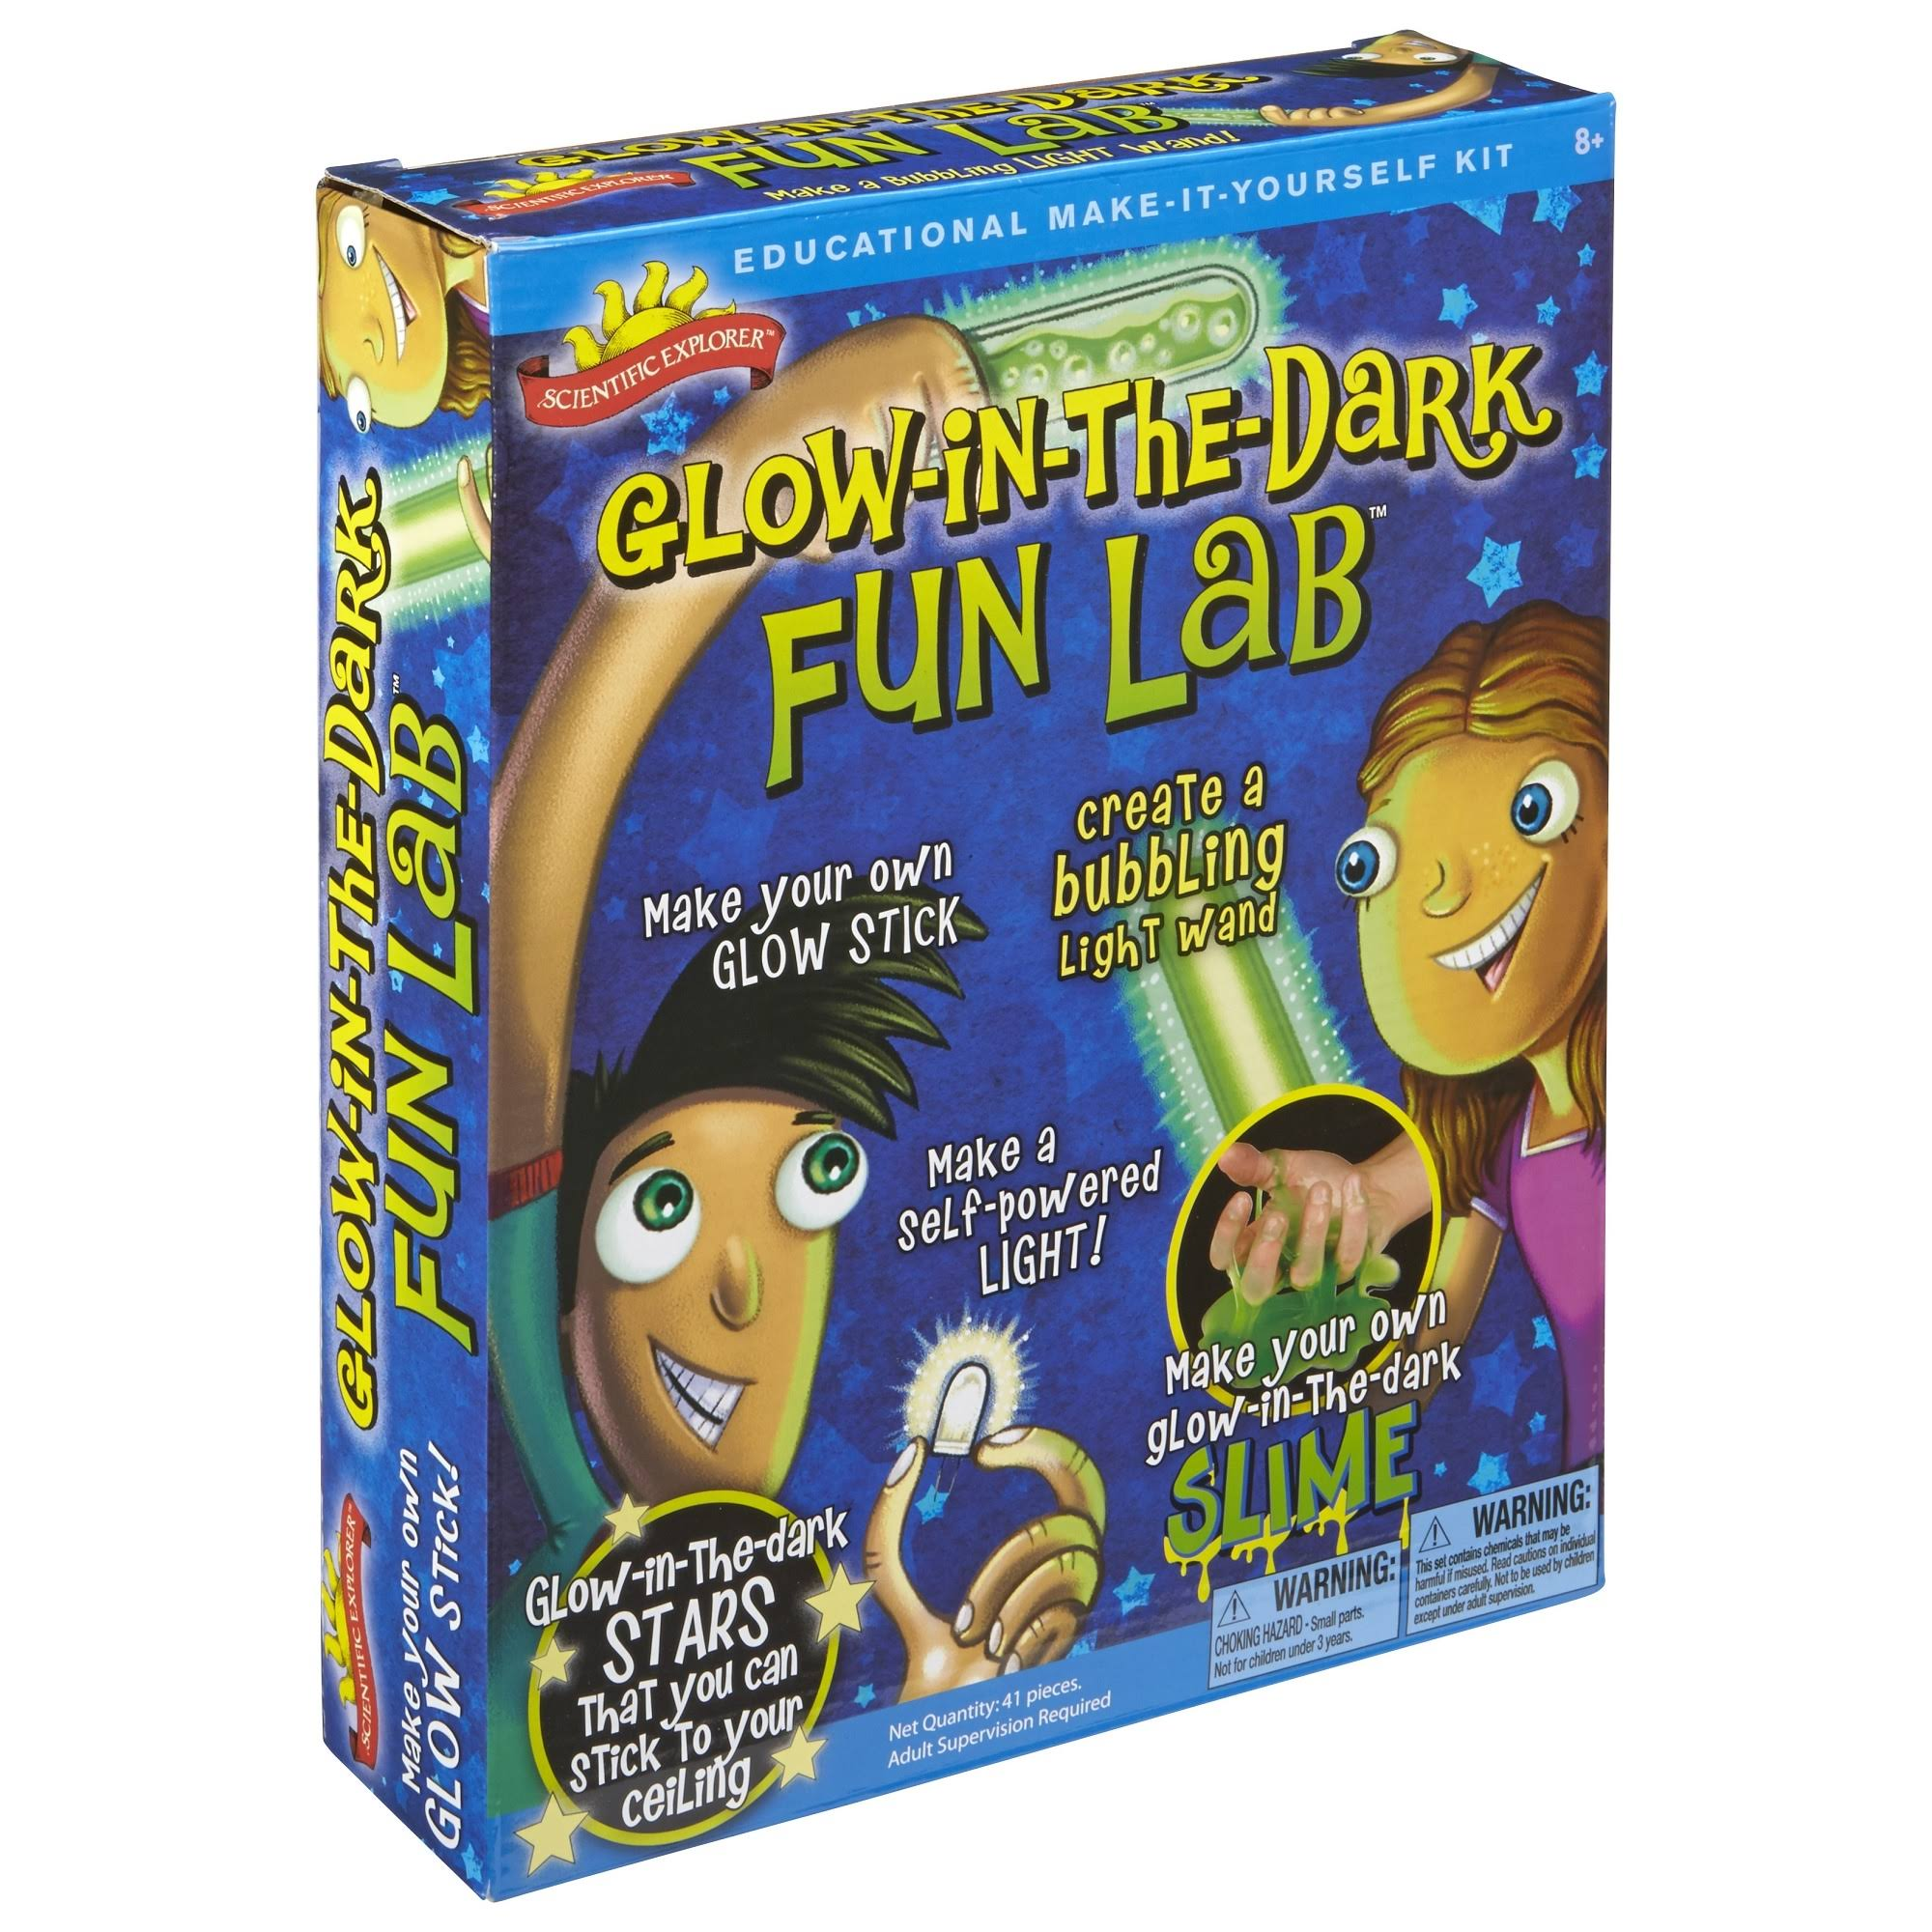 Scientific Explorer Glow In The Dark Fun Lab